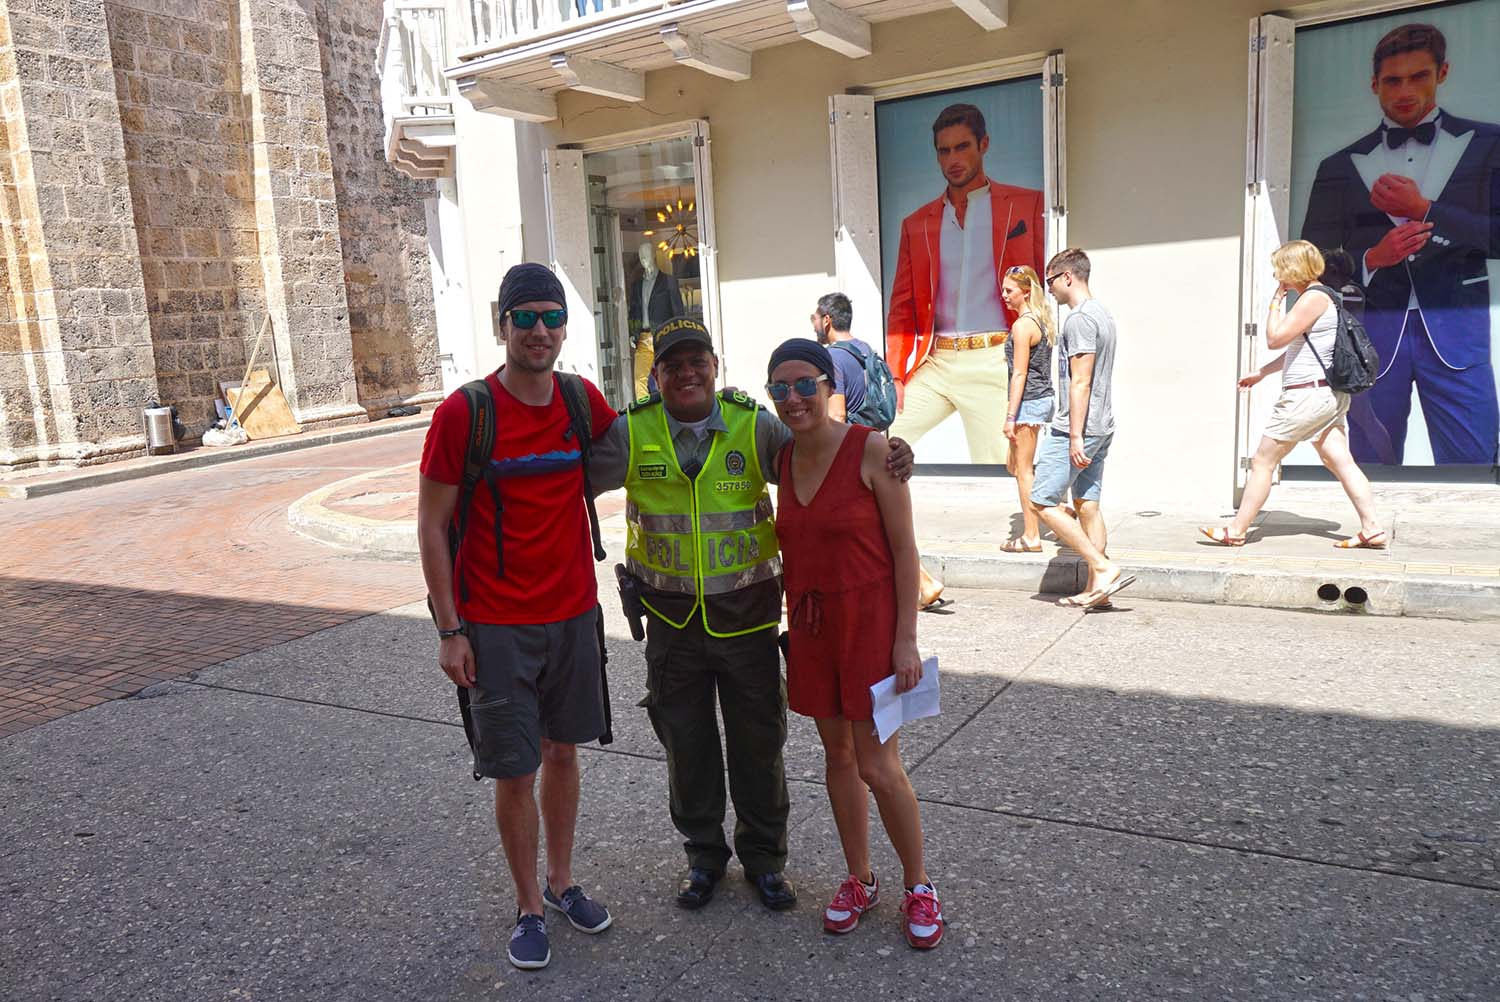 Police-guide in Cartagena, Colombia